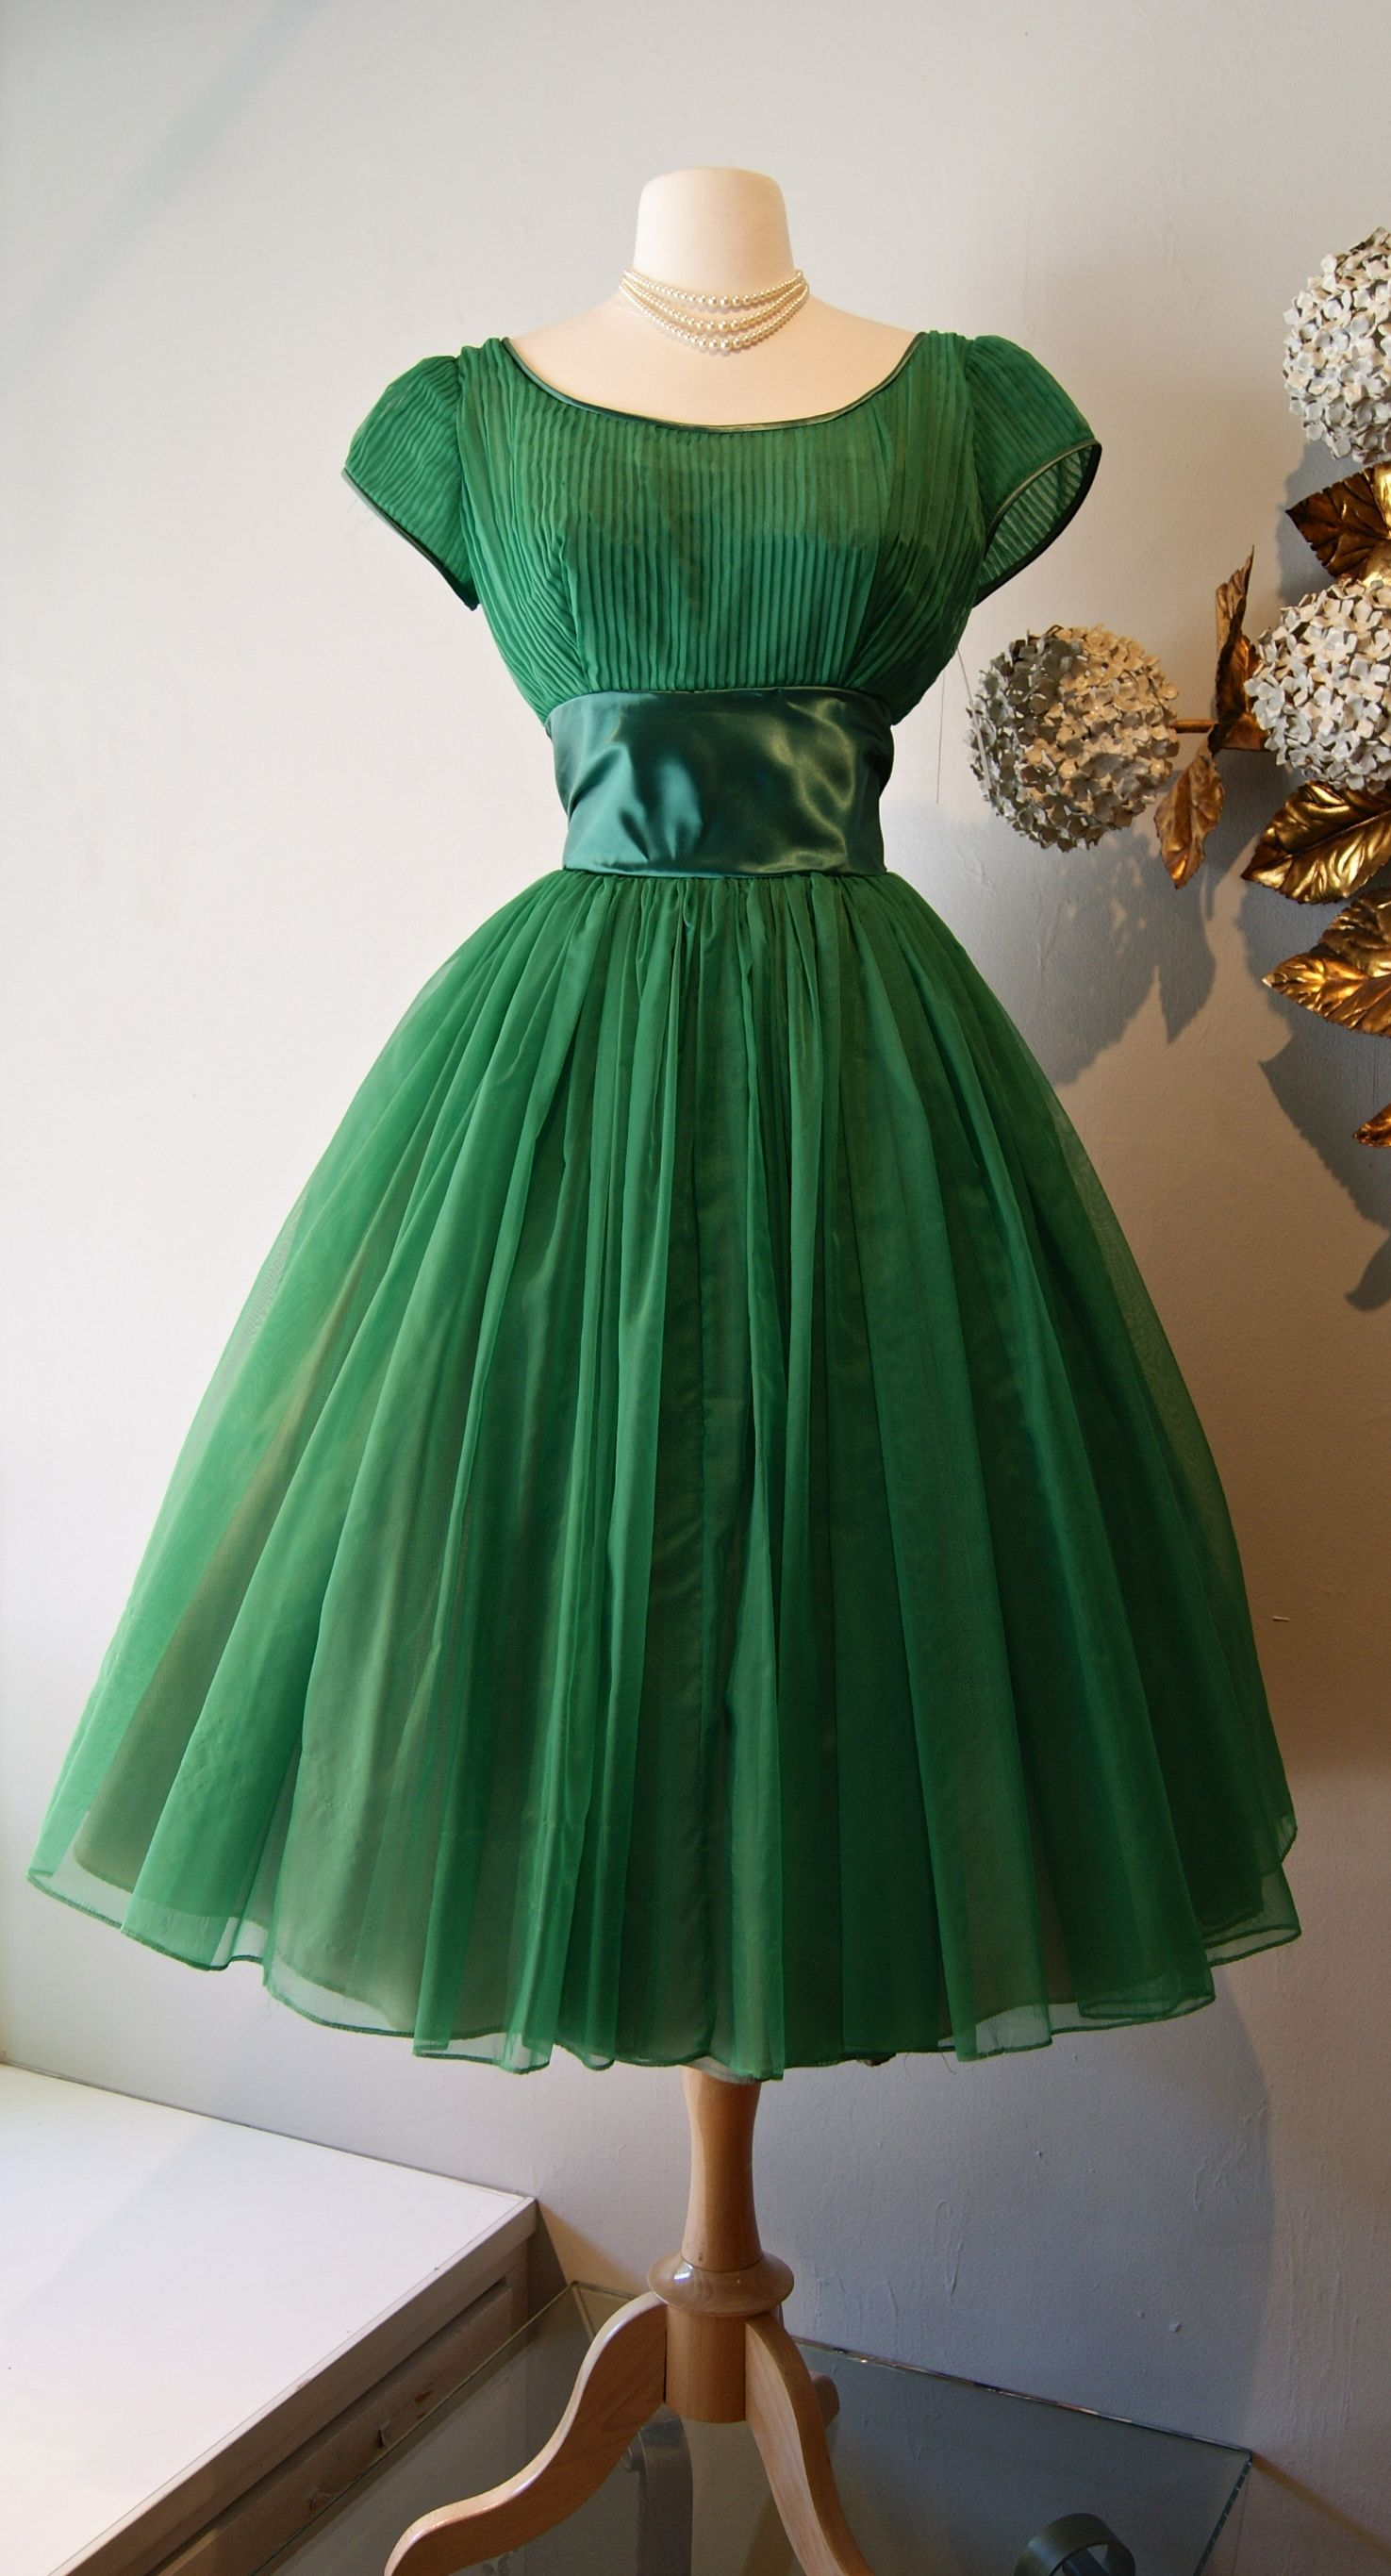 Bottle green prom dress  s bottle green party dress at Xtabay  vestidos  Pinterest